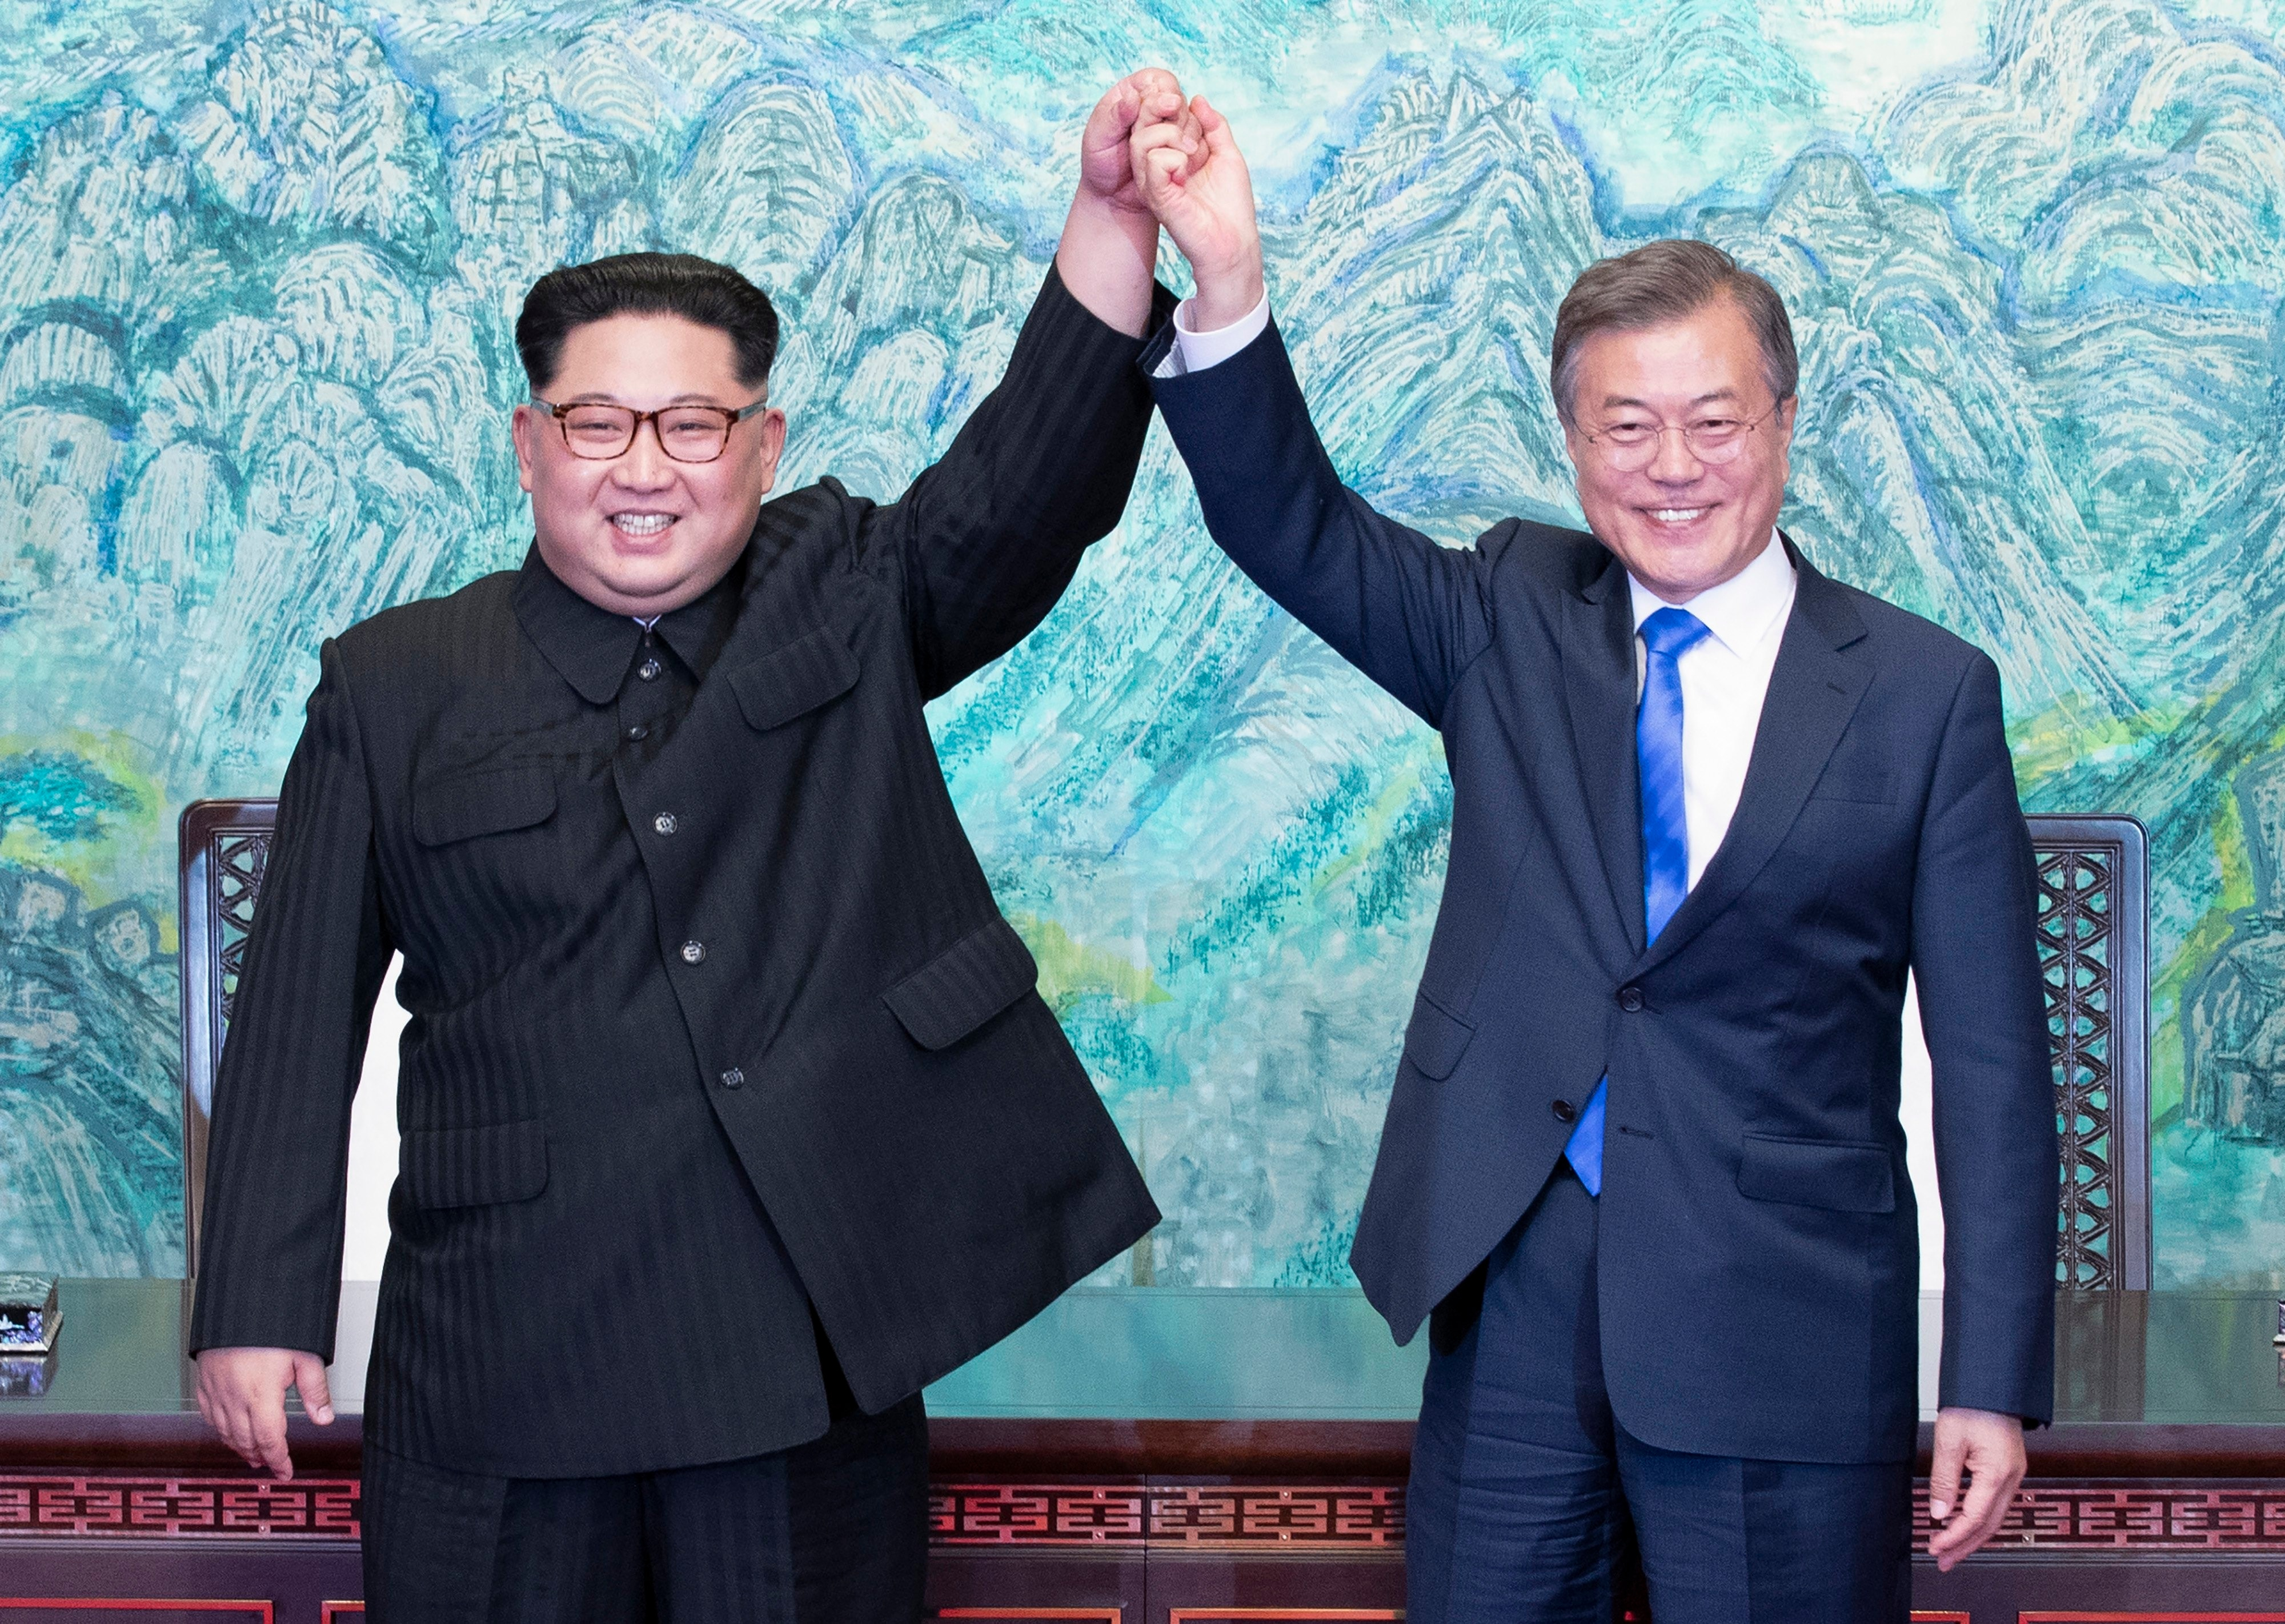 North Korean leader Kim Jong-Un and South Korean President Moon Jae-In join hands after signing a document at the Joint Security Area on the DMZ.